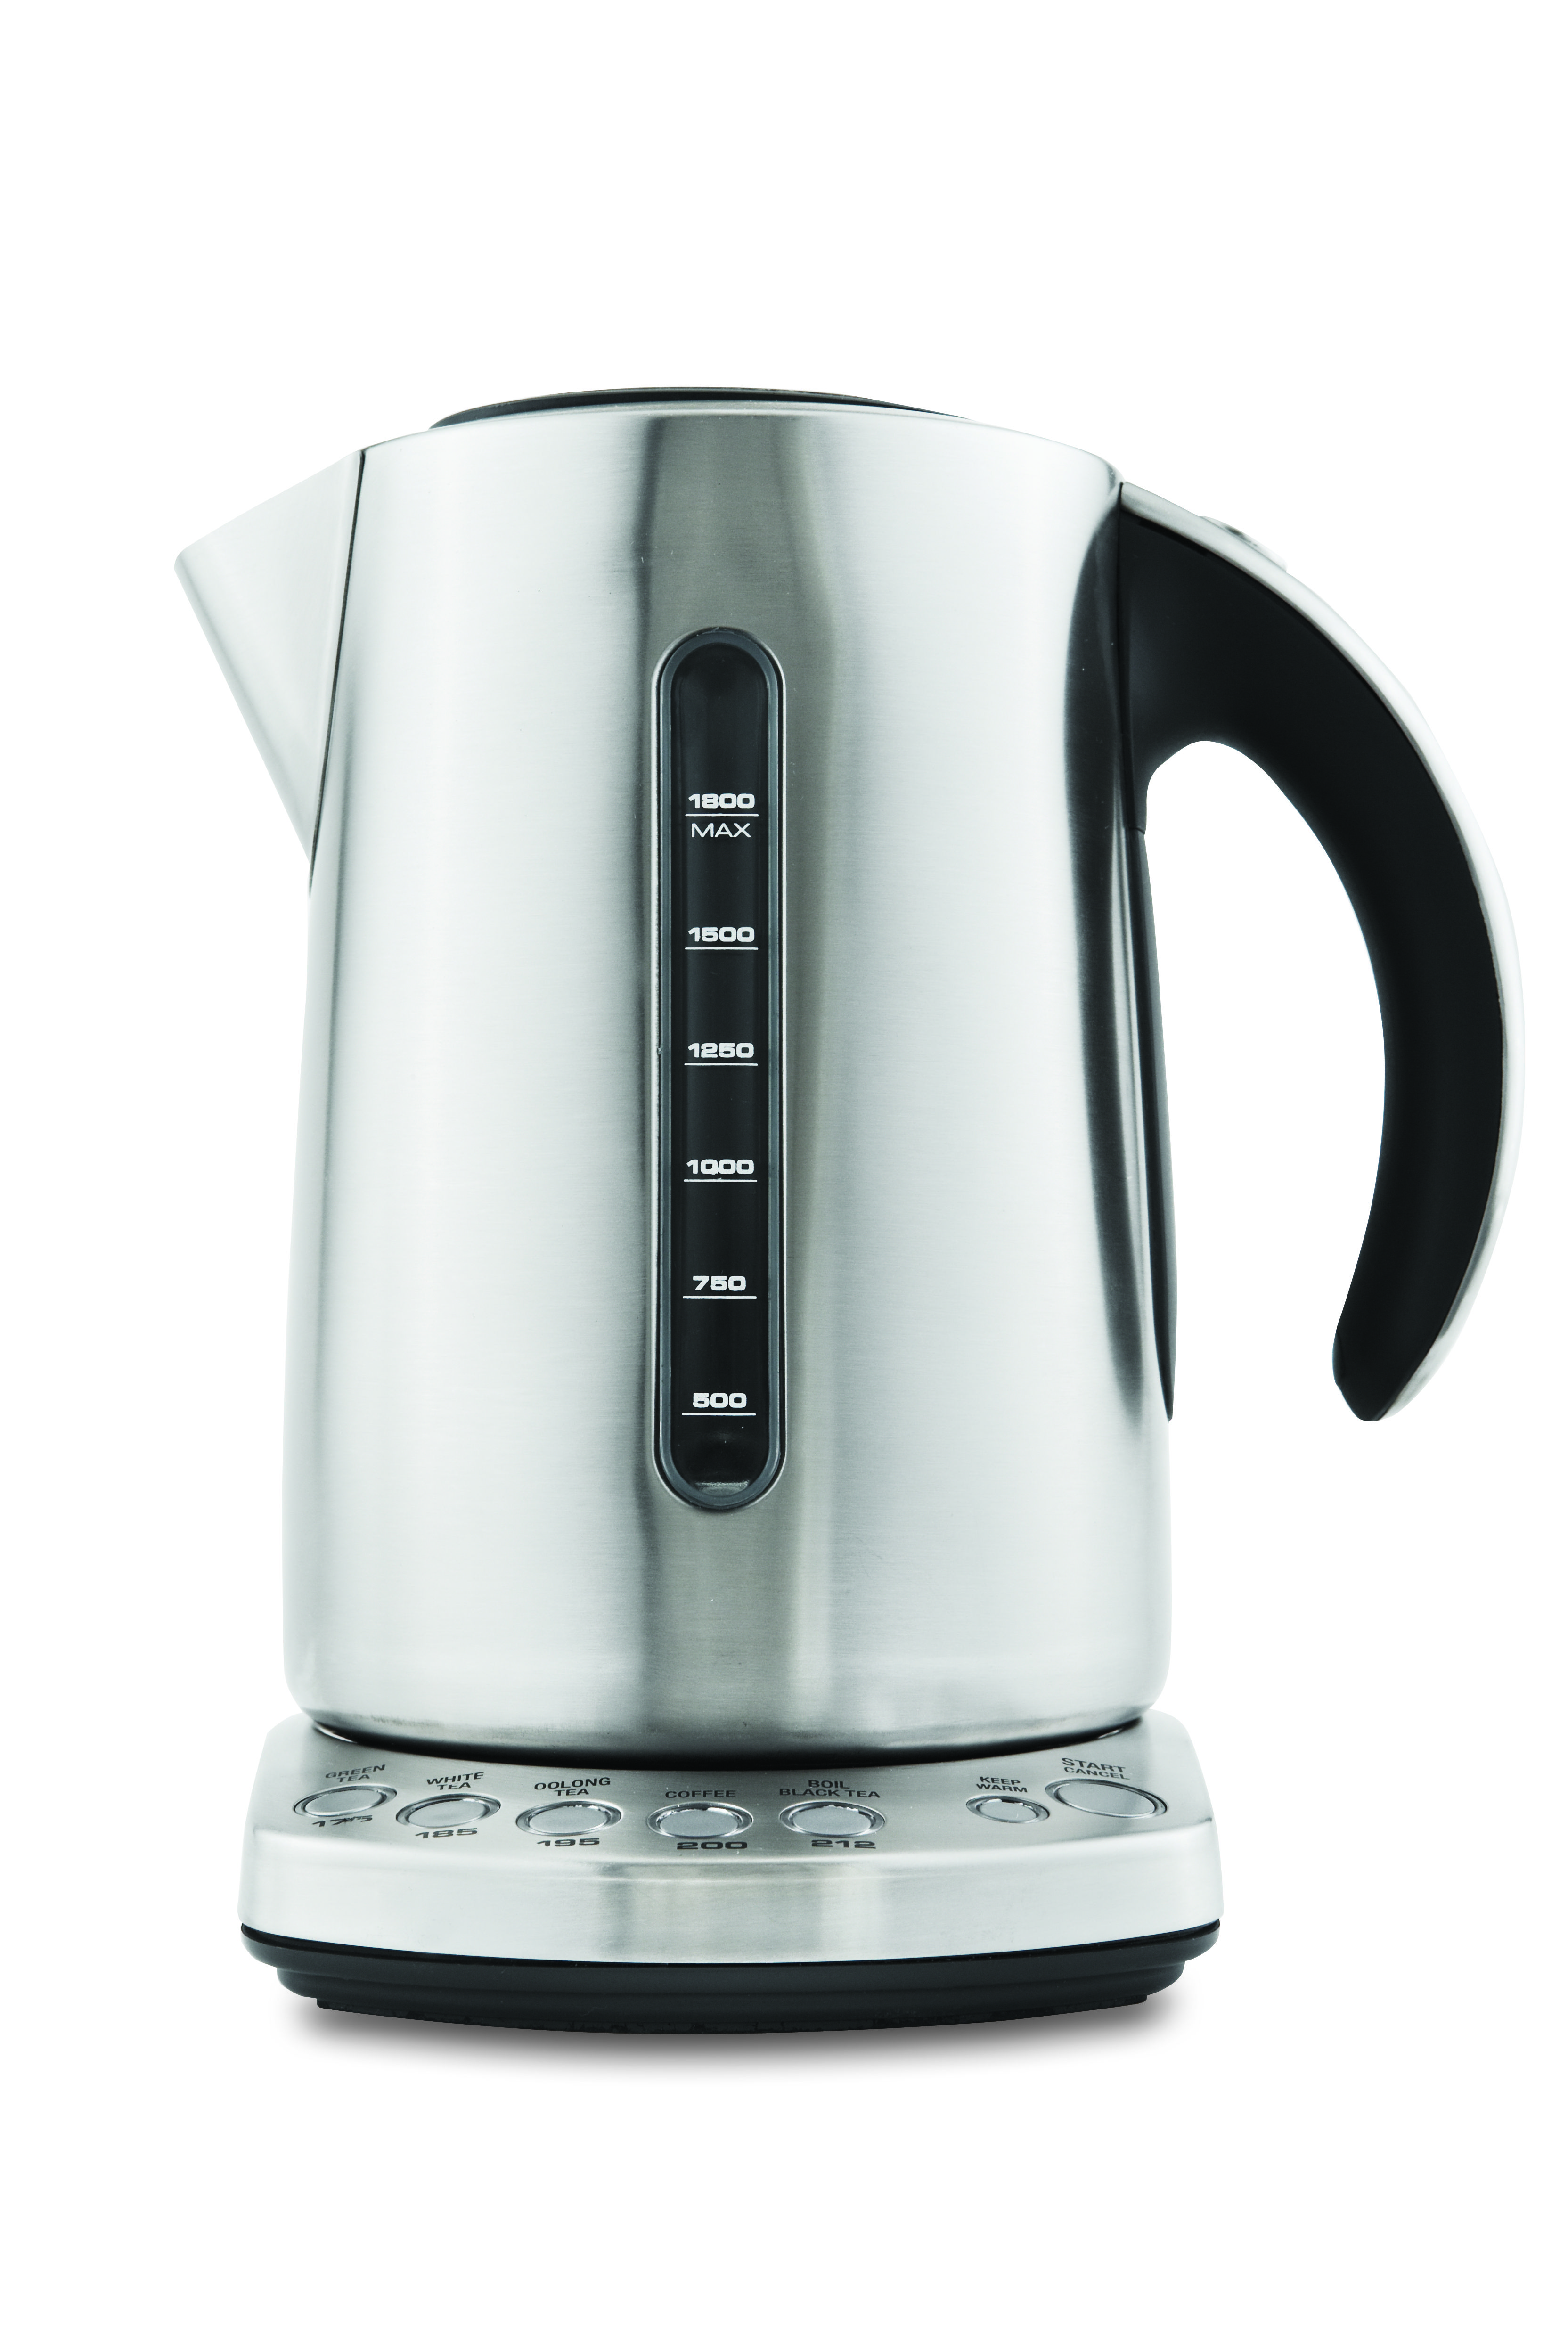 Breville variable heat kettle with images kitchen